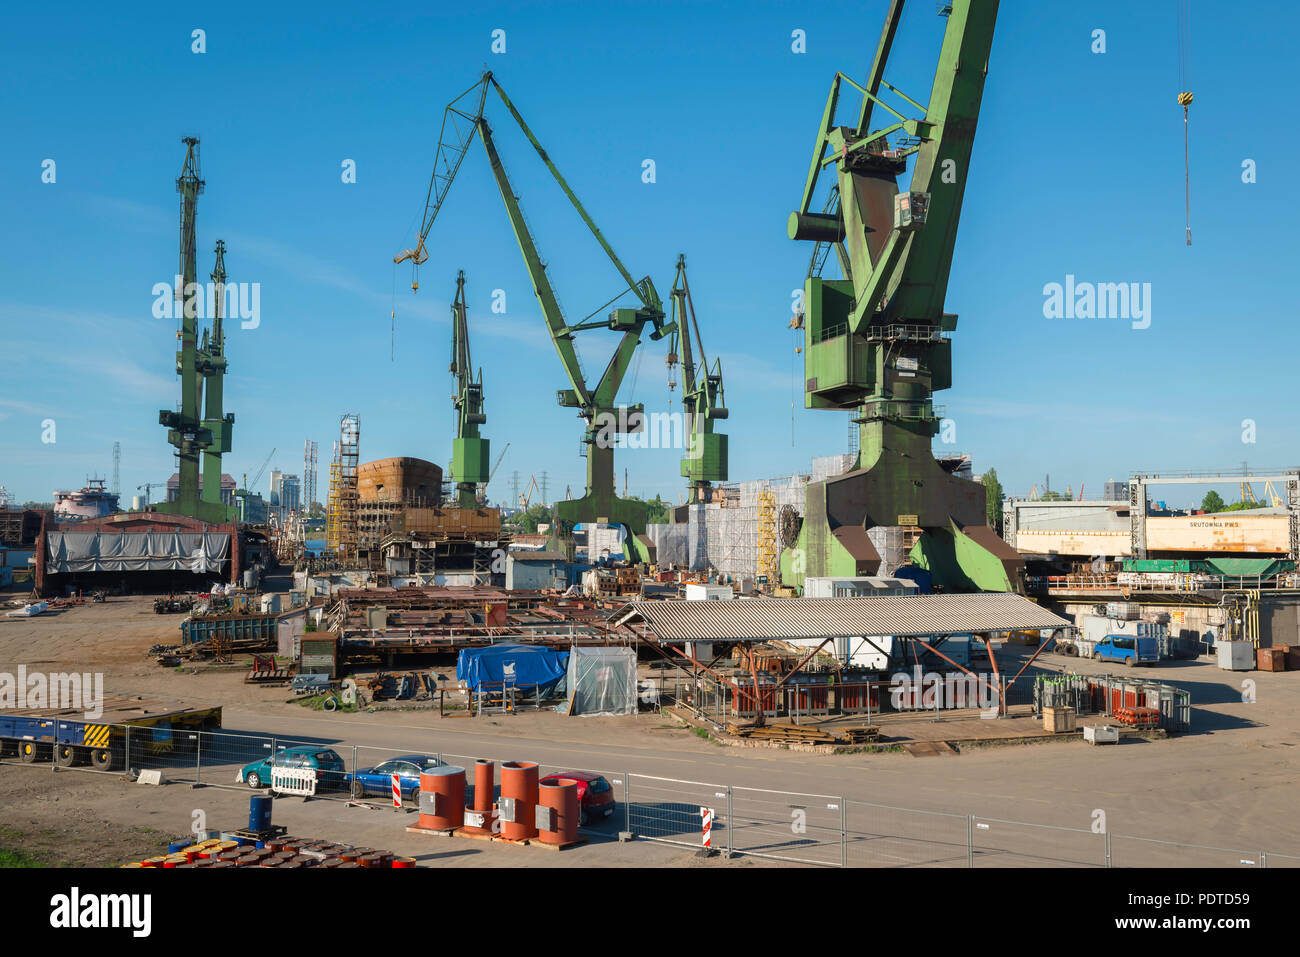 Gdansk shipyard, view of huge green cranes sited in the Gdansk Shipyard, focus in the 1980s of  protest and dissent by the Solidarity Movement, Poland. Stock Photo